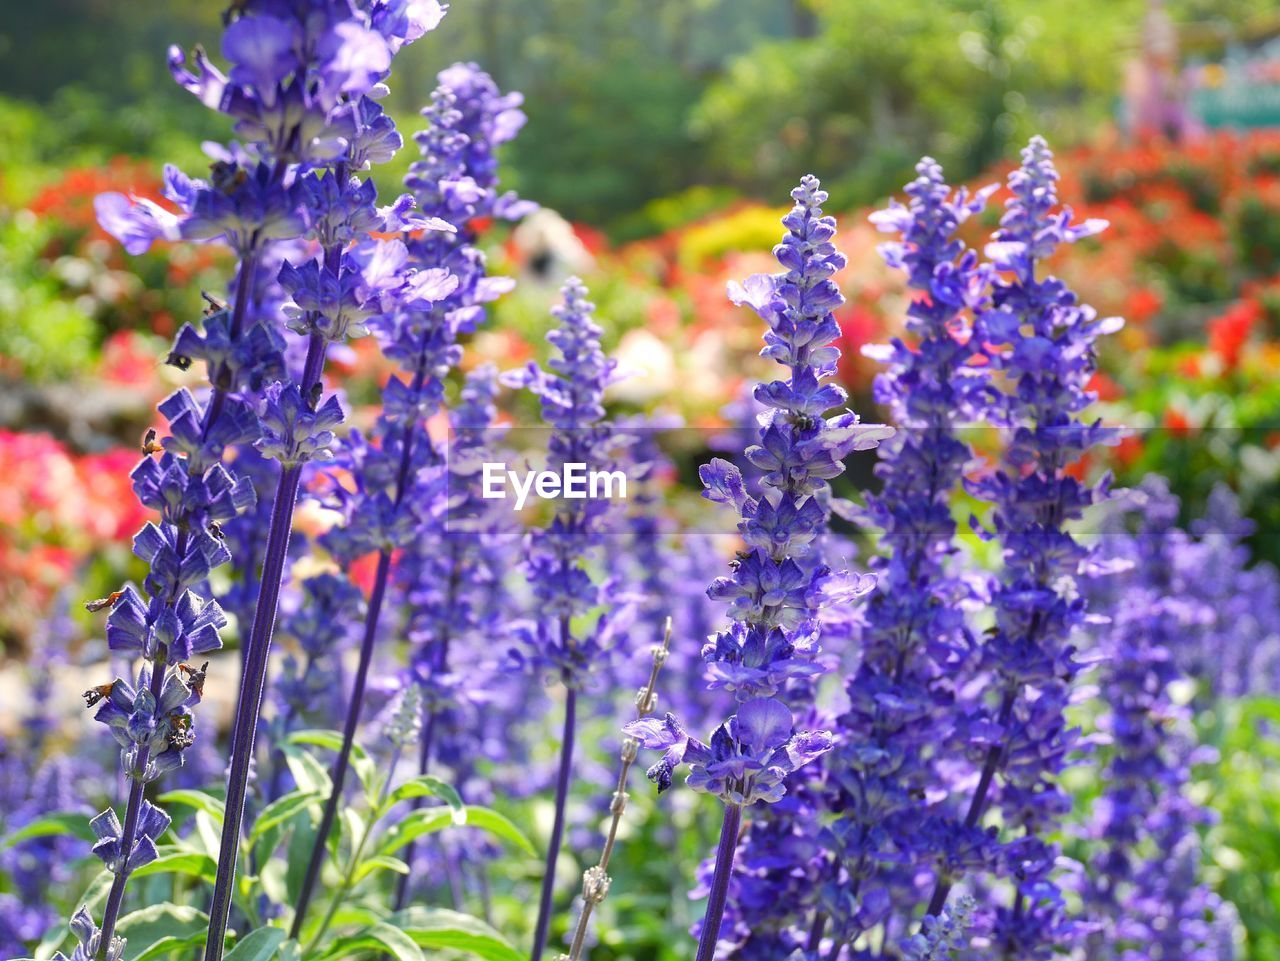 flower, flowering plant, vulnerability, purple, plant, fragility, growth, beauty in nature, freshness, close-up, lavender, nature, selective focus, day, petal, no people, lavender colored, field, inflorescence, land, flower head, springtime, gardening, flowerbed